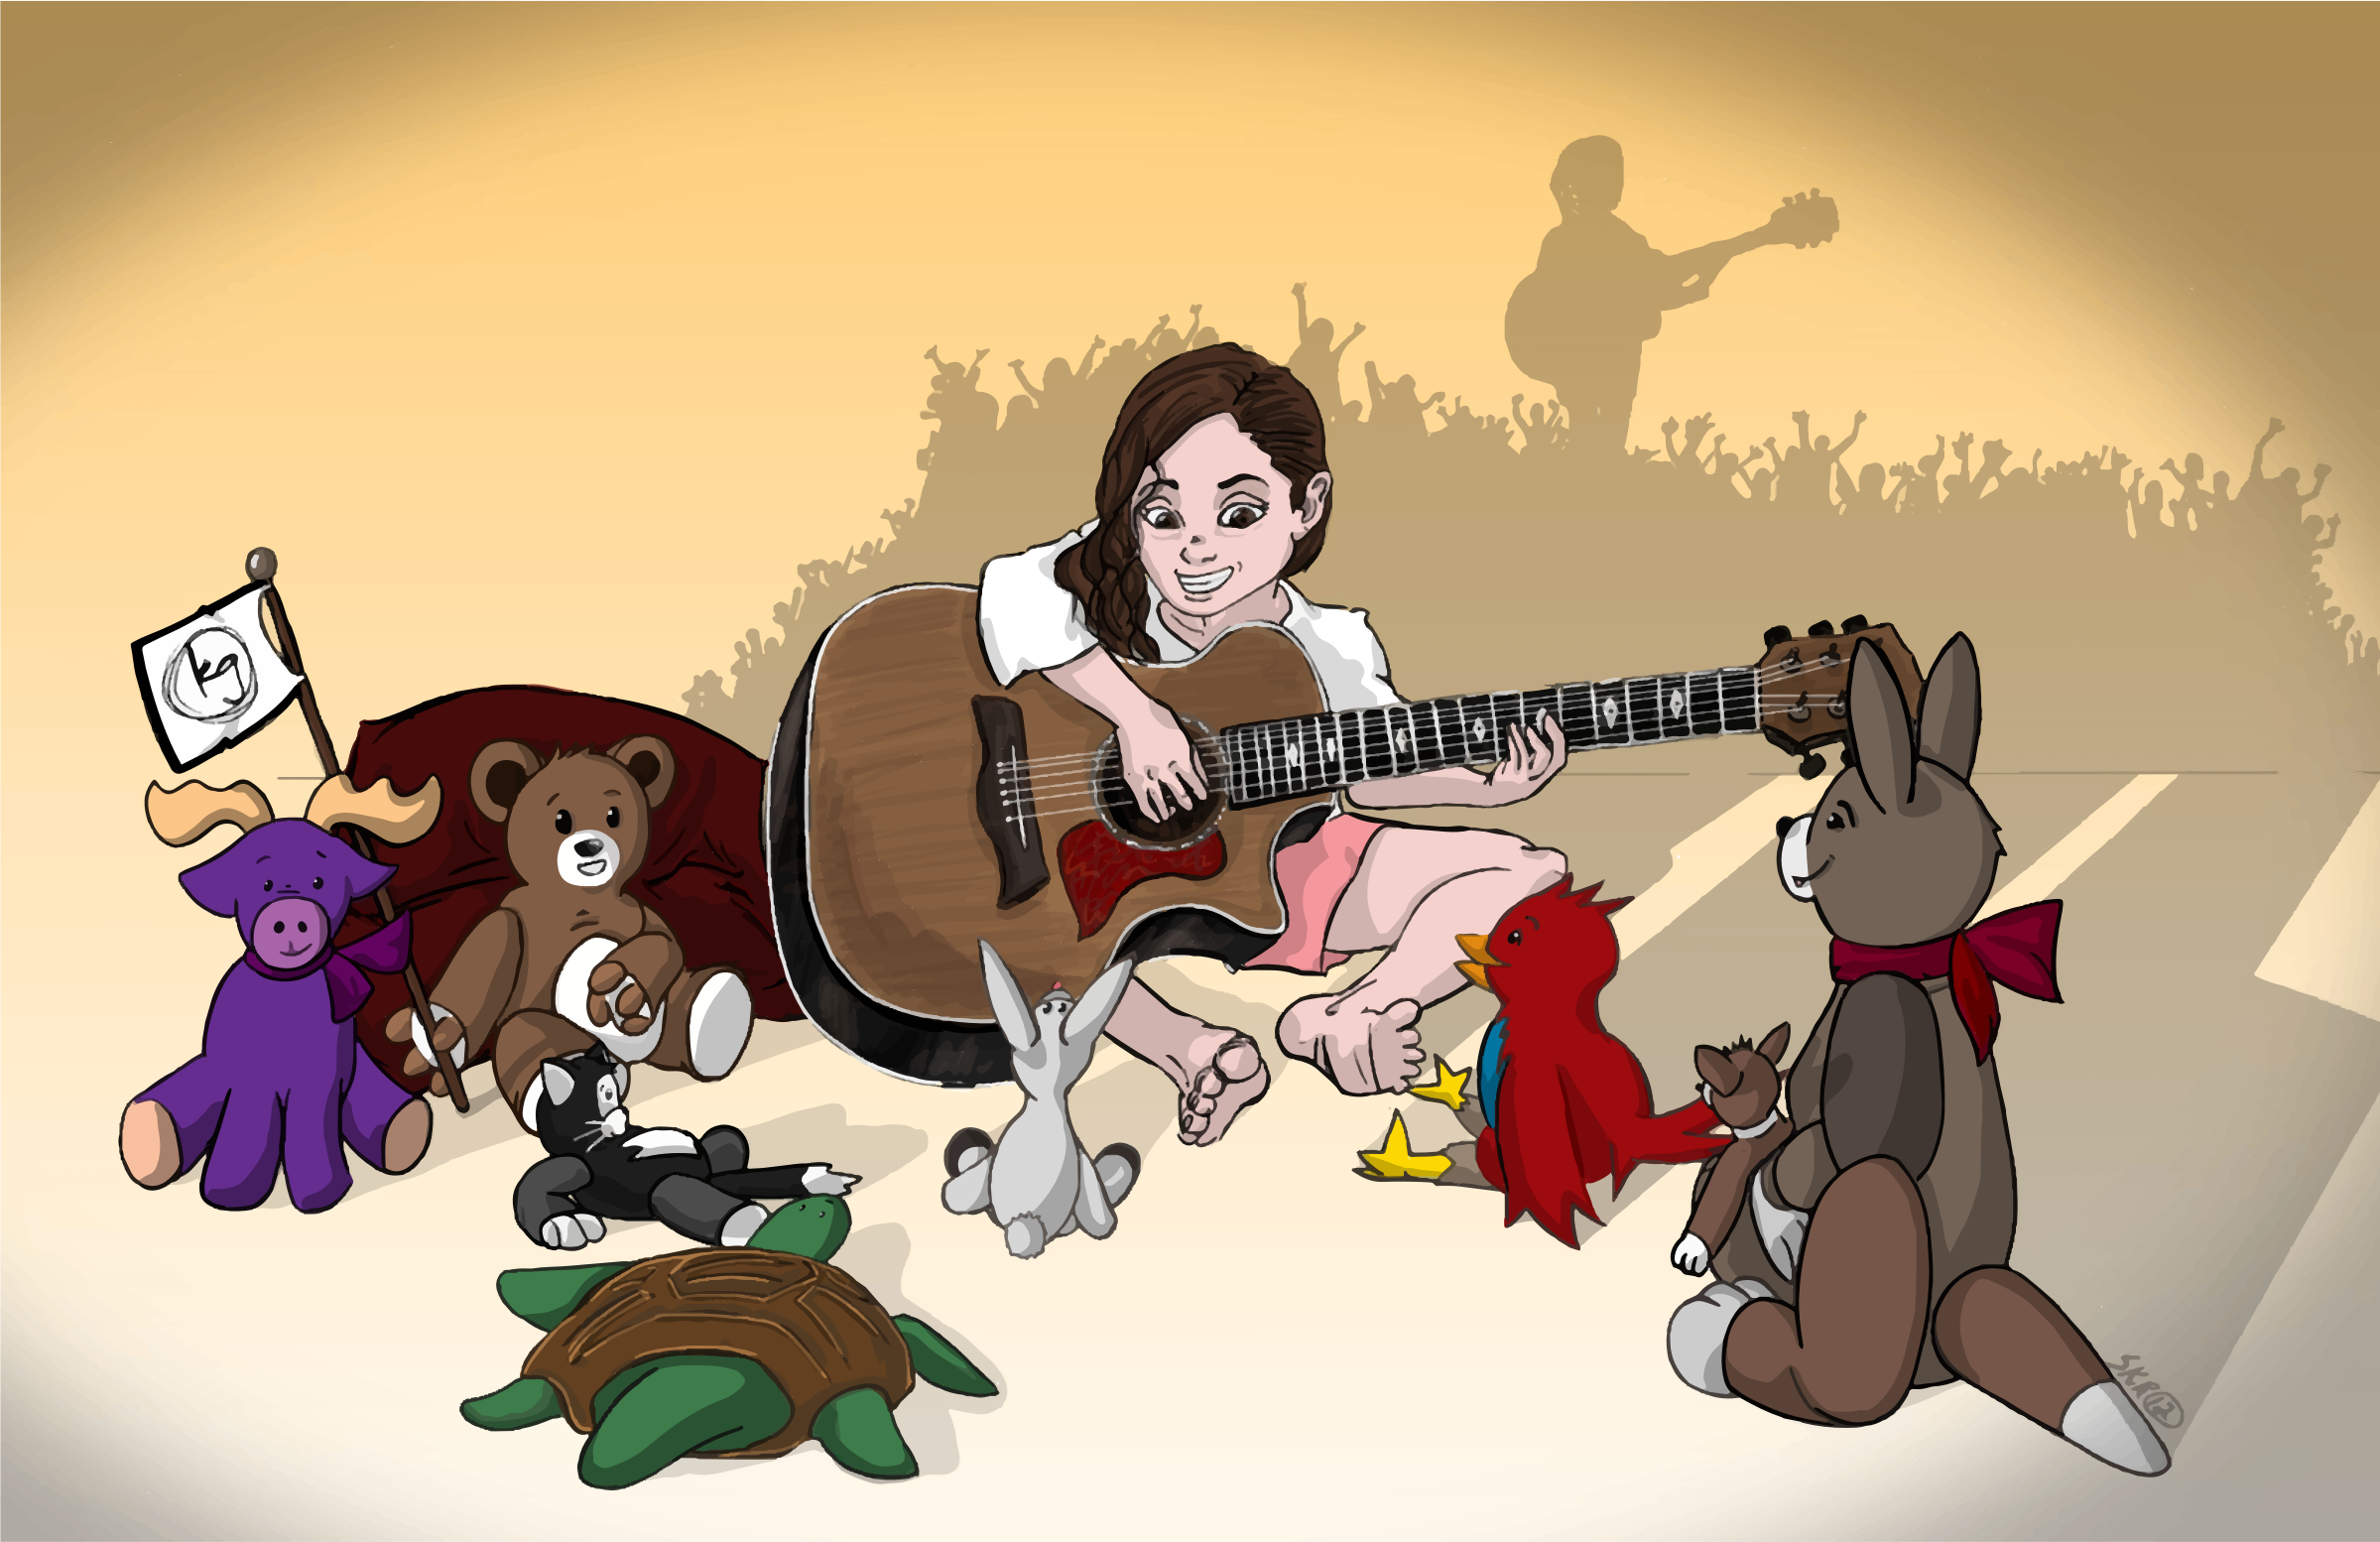 Girl Playing Guitar For Animals by GDJ